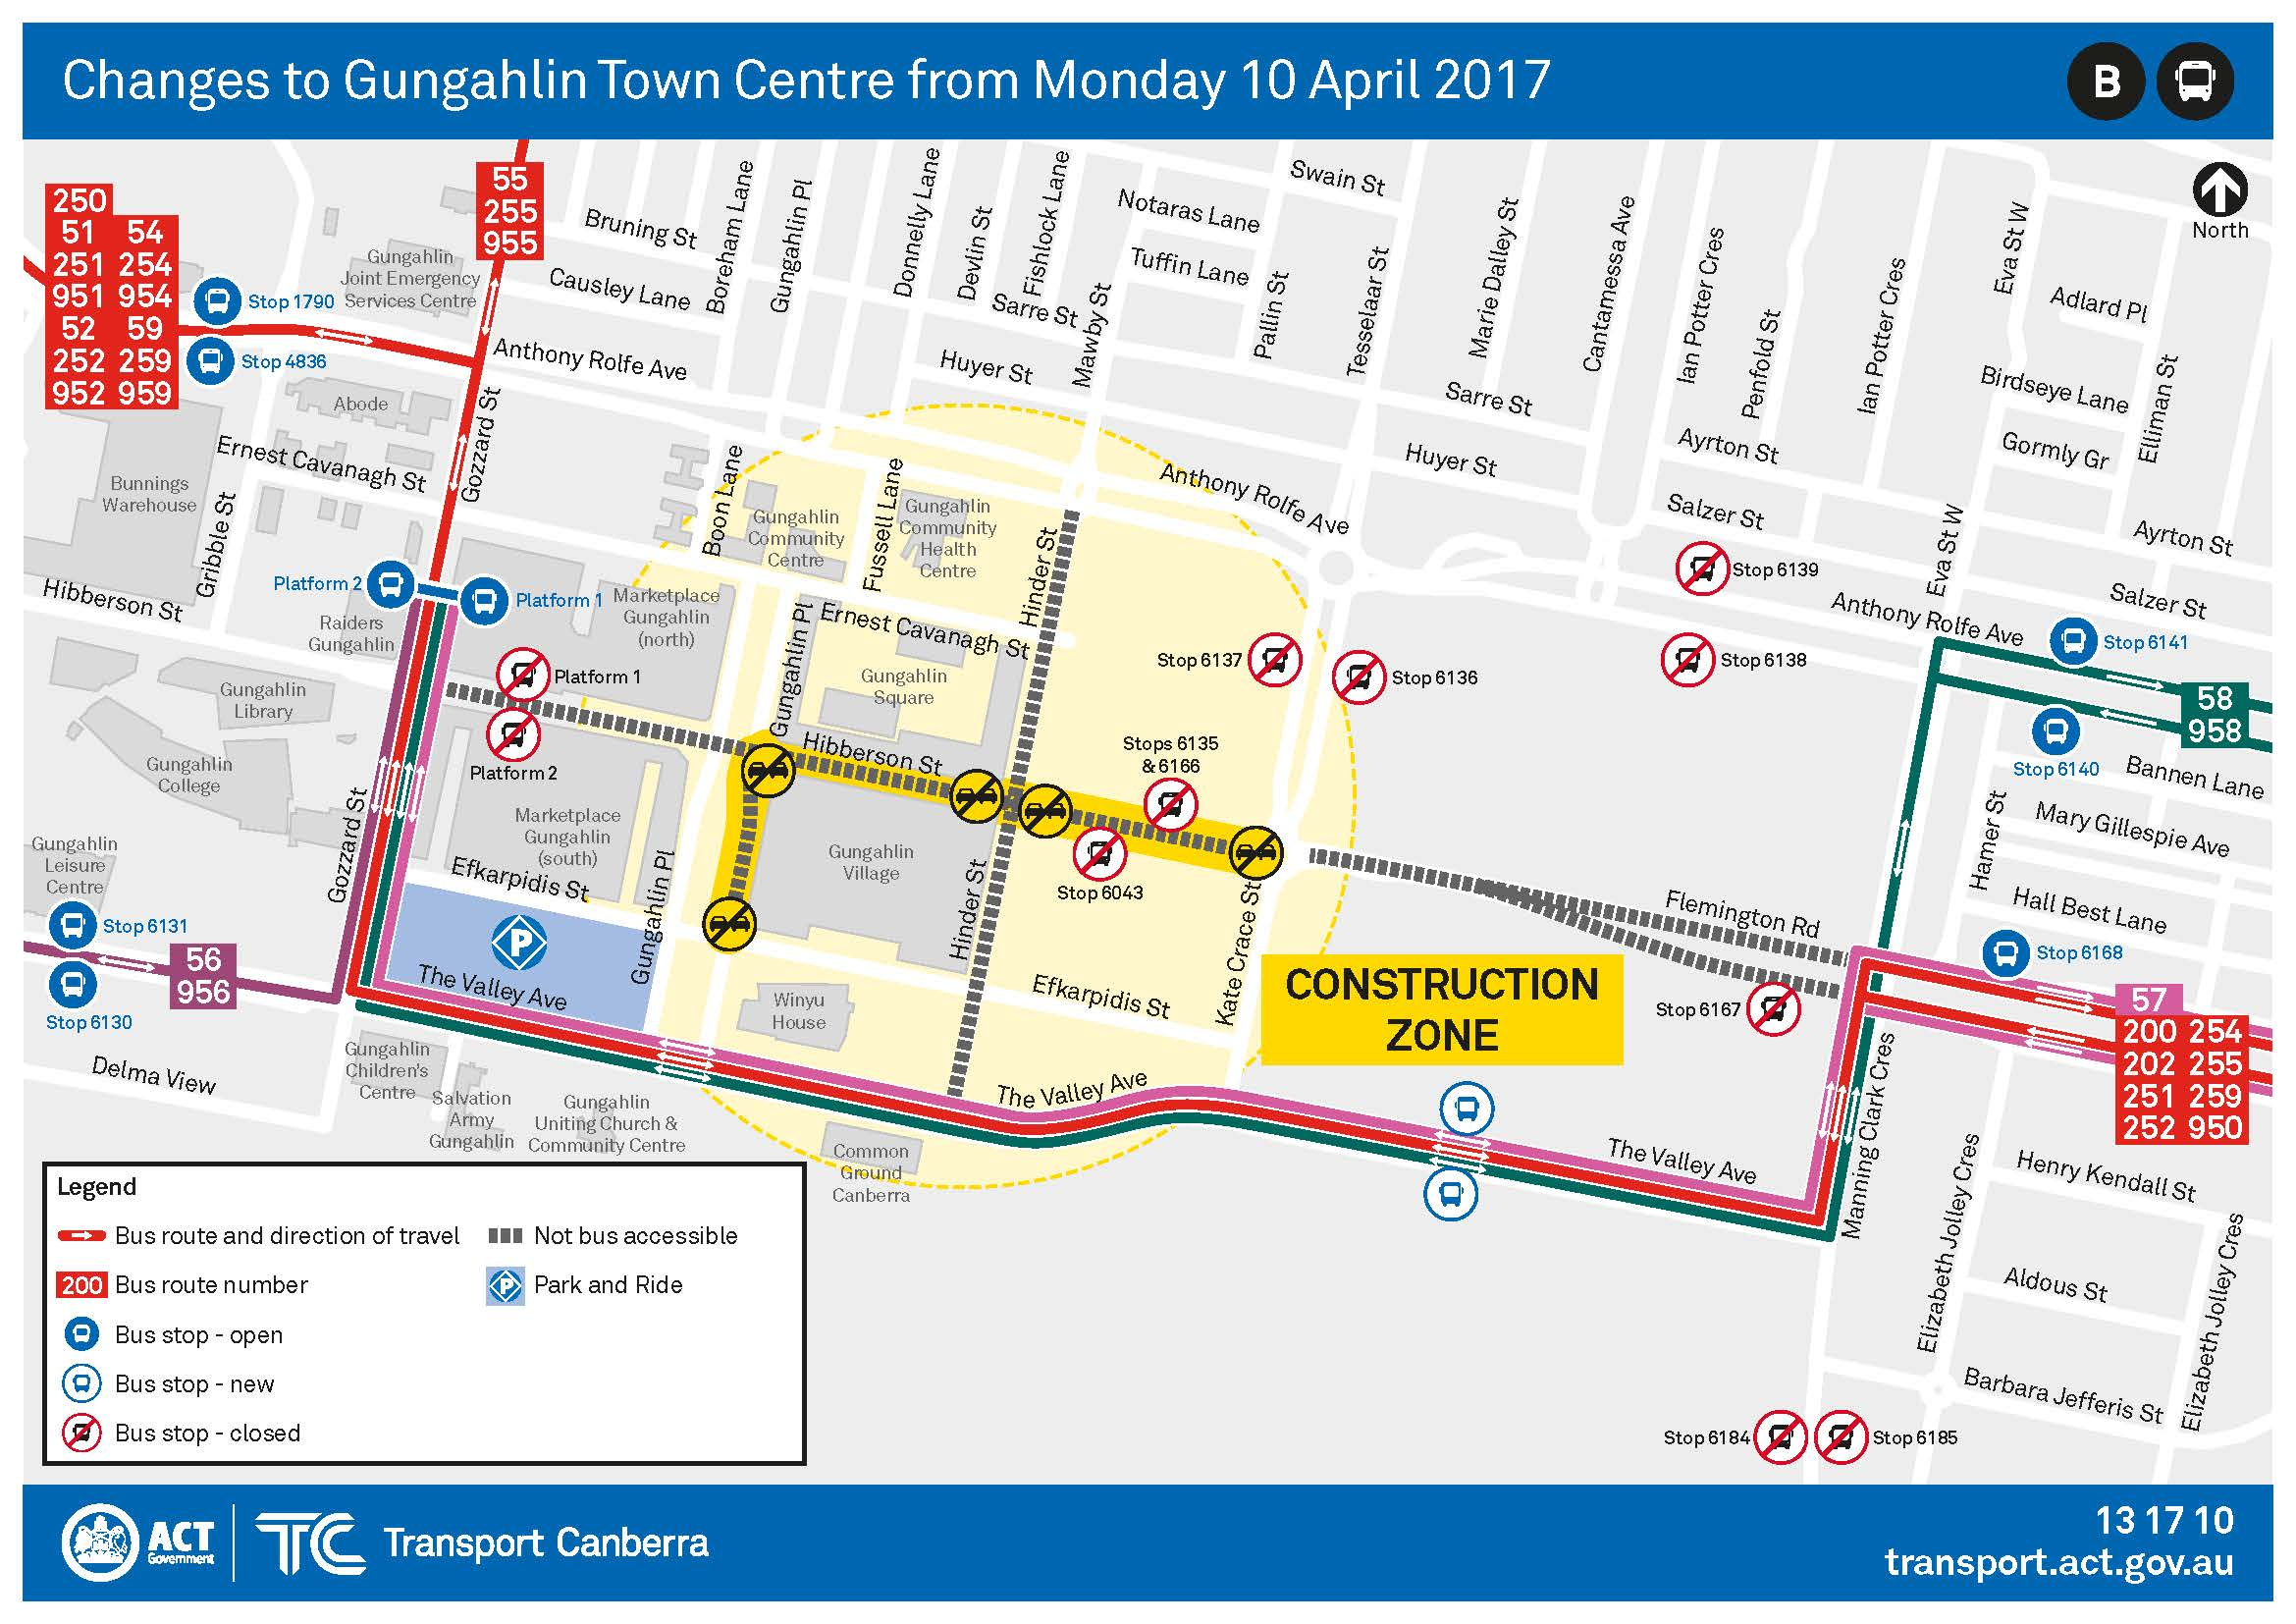 A map showing the bus diversions at Gungahlin Town Centre from 10 April, 2017